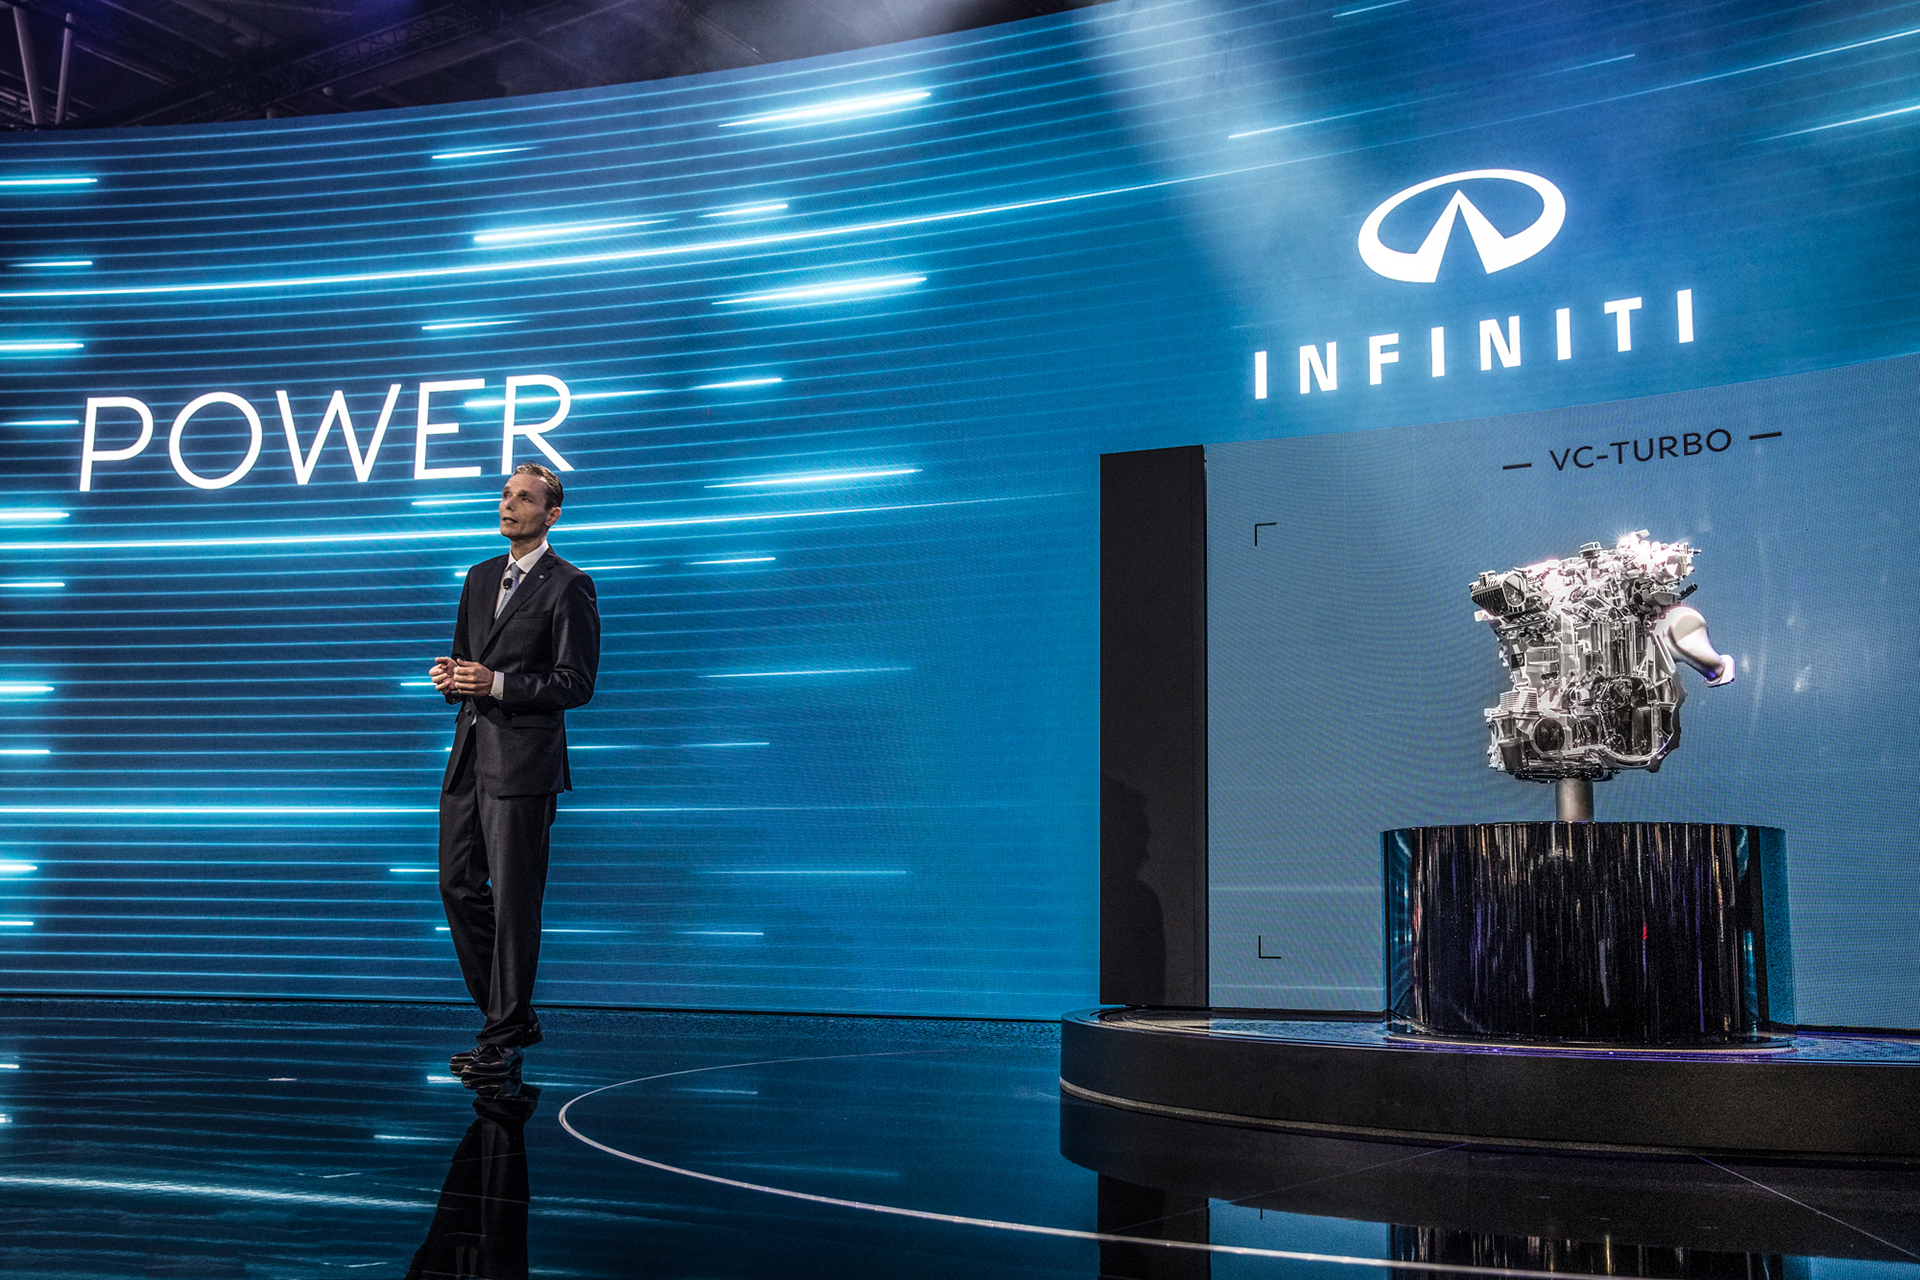 INFINITI at the 2016 Paris Motor Show © Nissan Motor Co., Ltd.